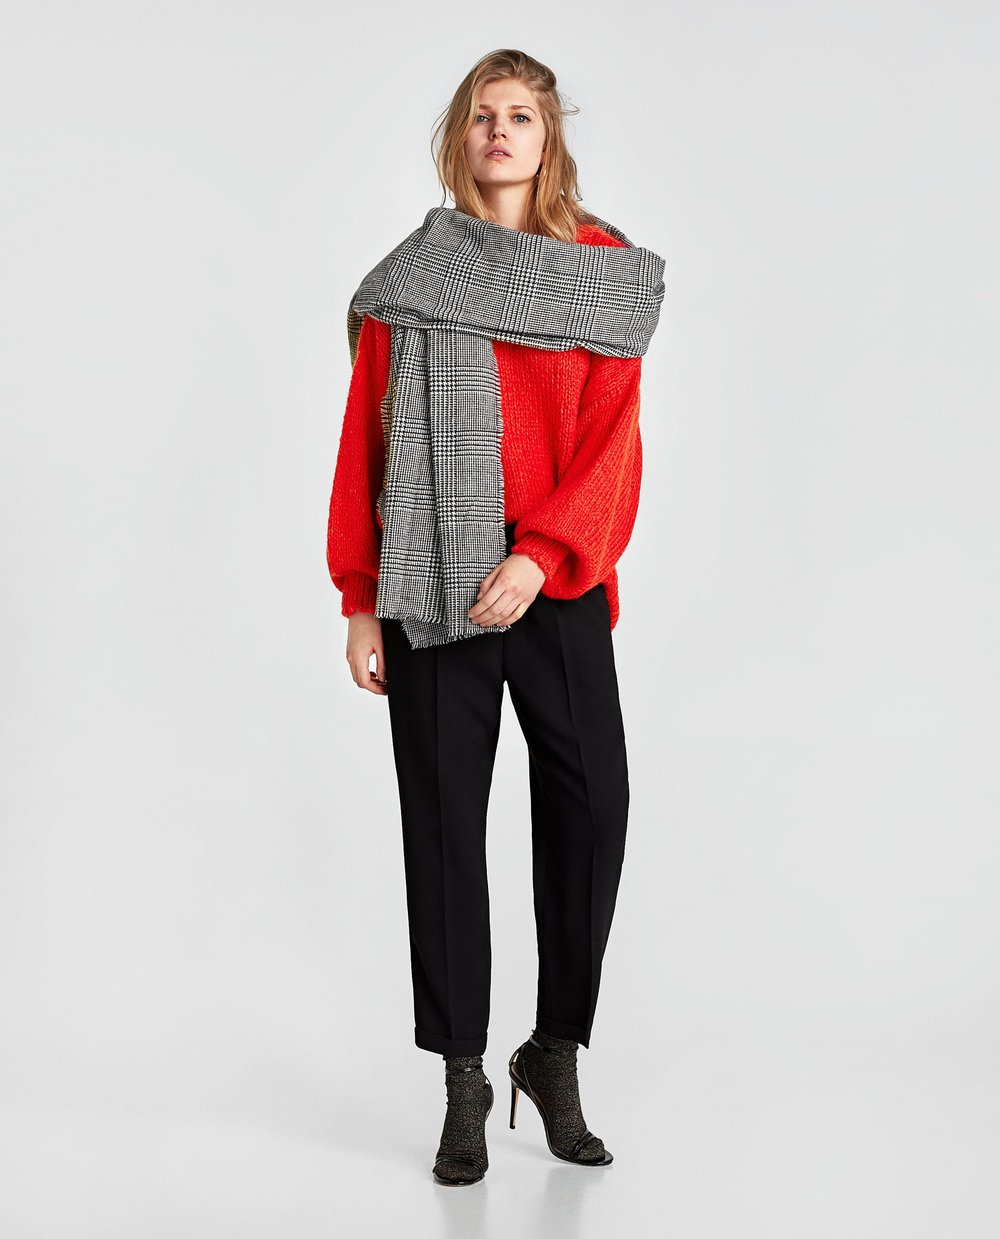 3. the monochrome one - ZARA: Check Scarf, £17.99Another one that could easily double as a blanket, this oversized checked jacquard scarf is perfect for when you want to keep things monochrome.